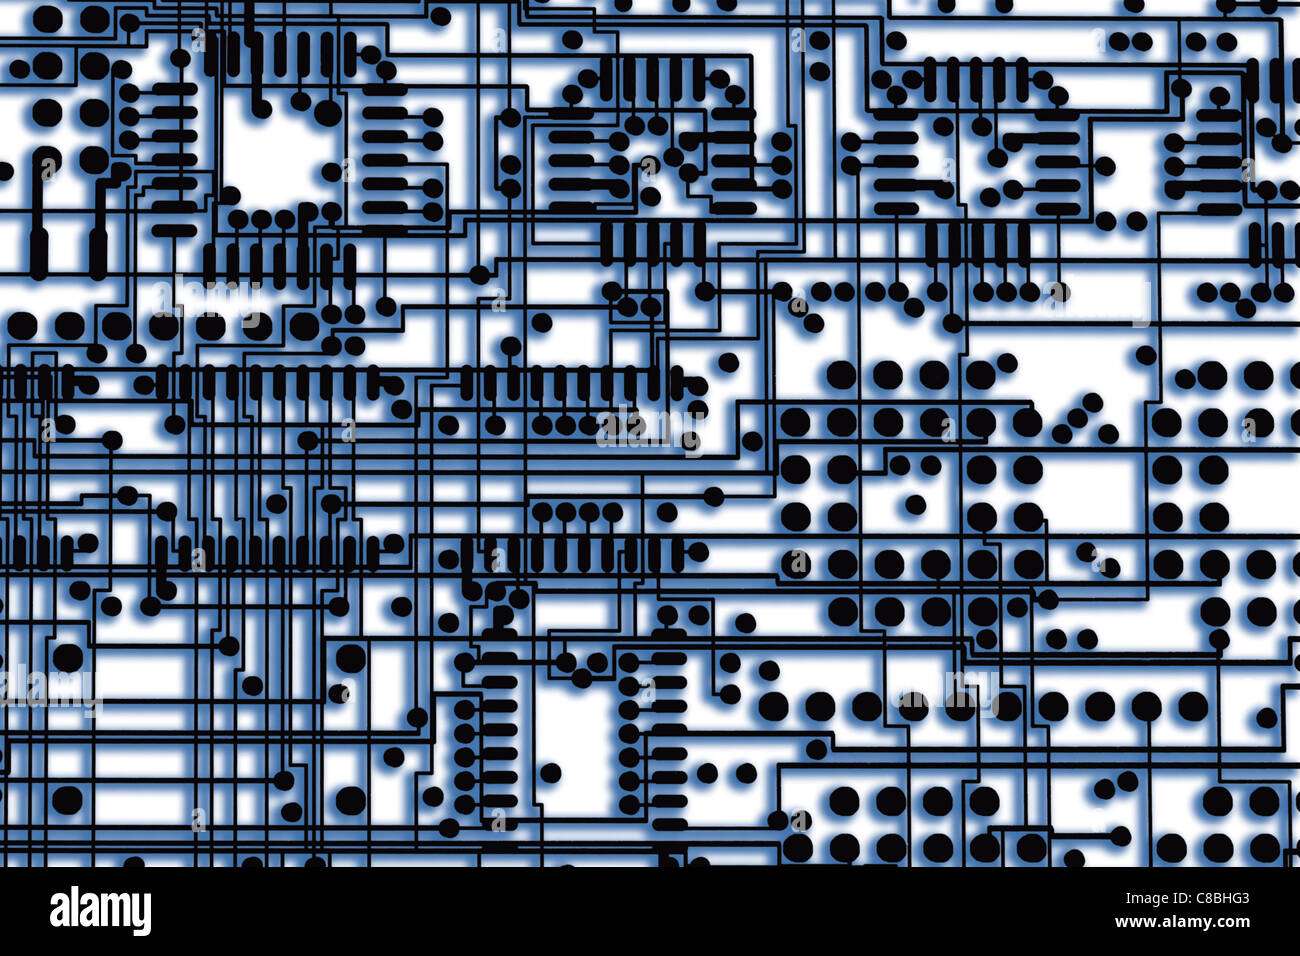 Circuit Board Layout Stock Photos Multilayer Images Digital Enhancement Two Layers Overlapped On Film Of Printed